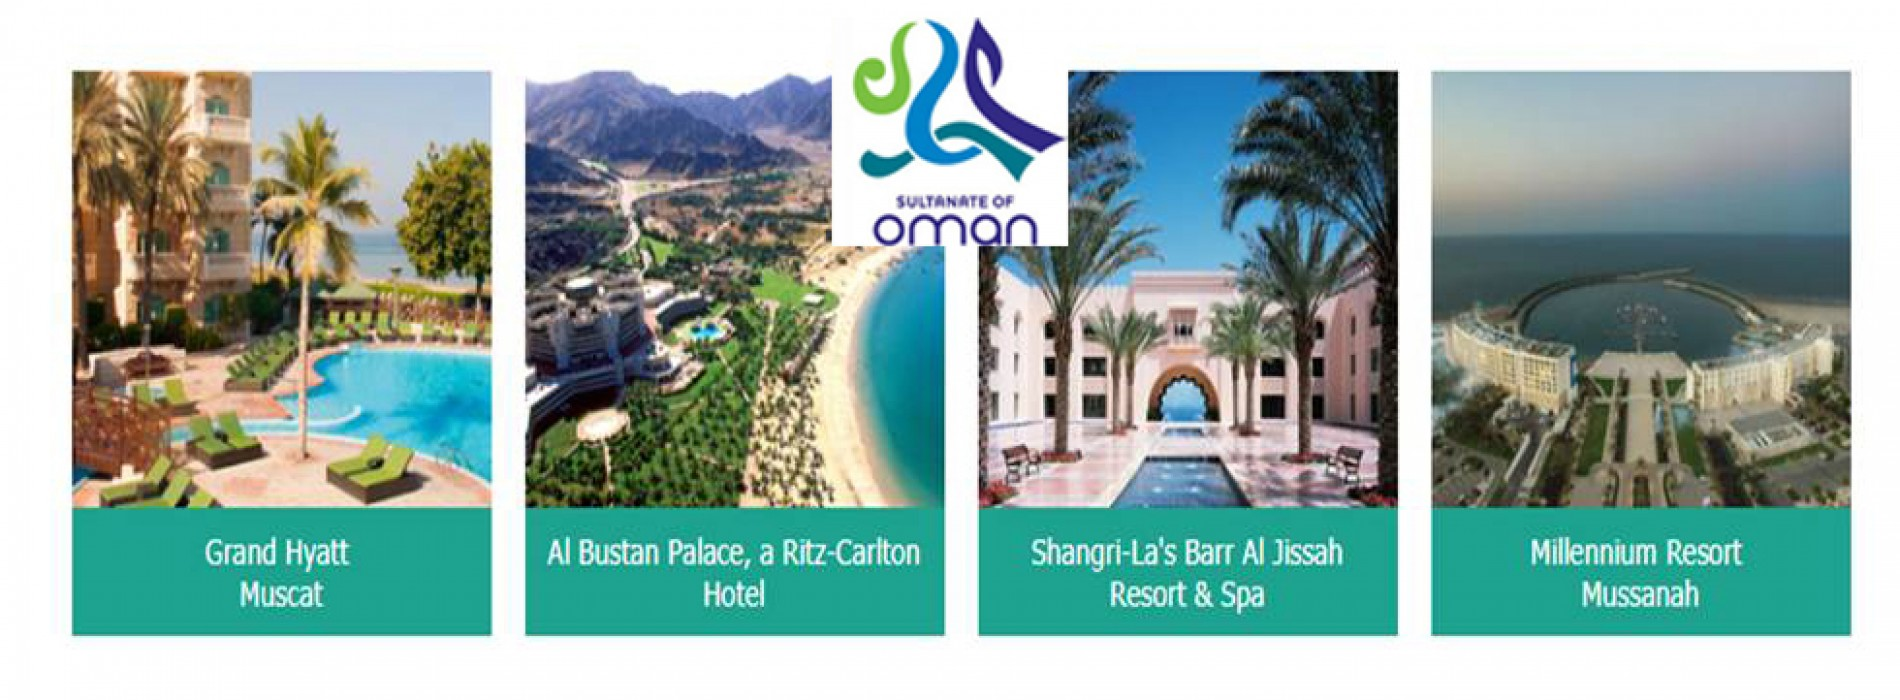 'Oman' for destination wedding and celebrations